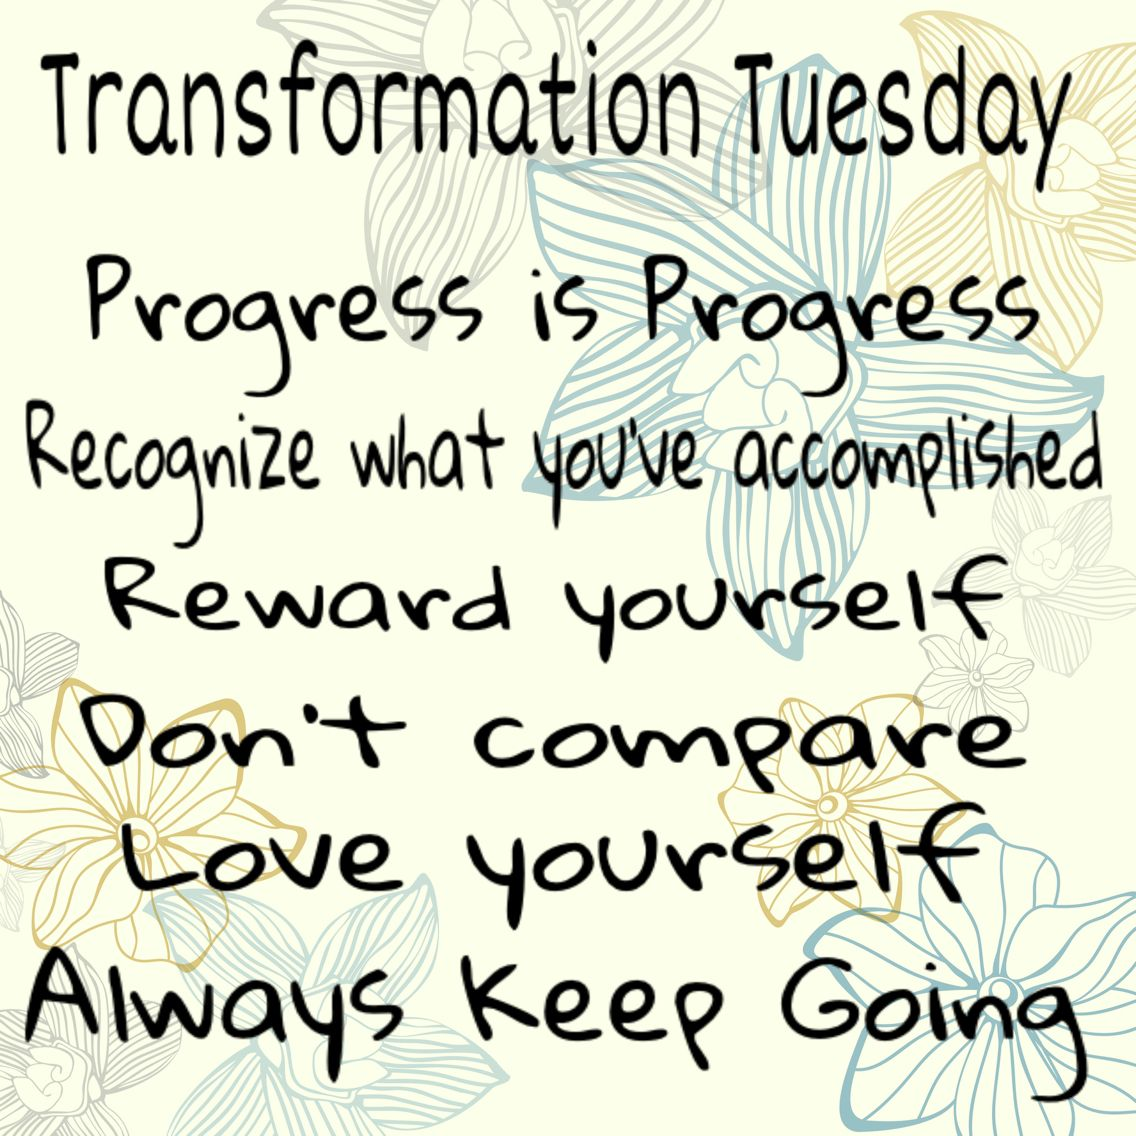 Tuesday Motivational Quotes Transformation Tuesday Strive for progress and not perfection as  Tuesday Motivational Quotes